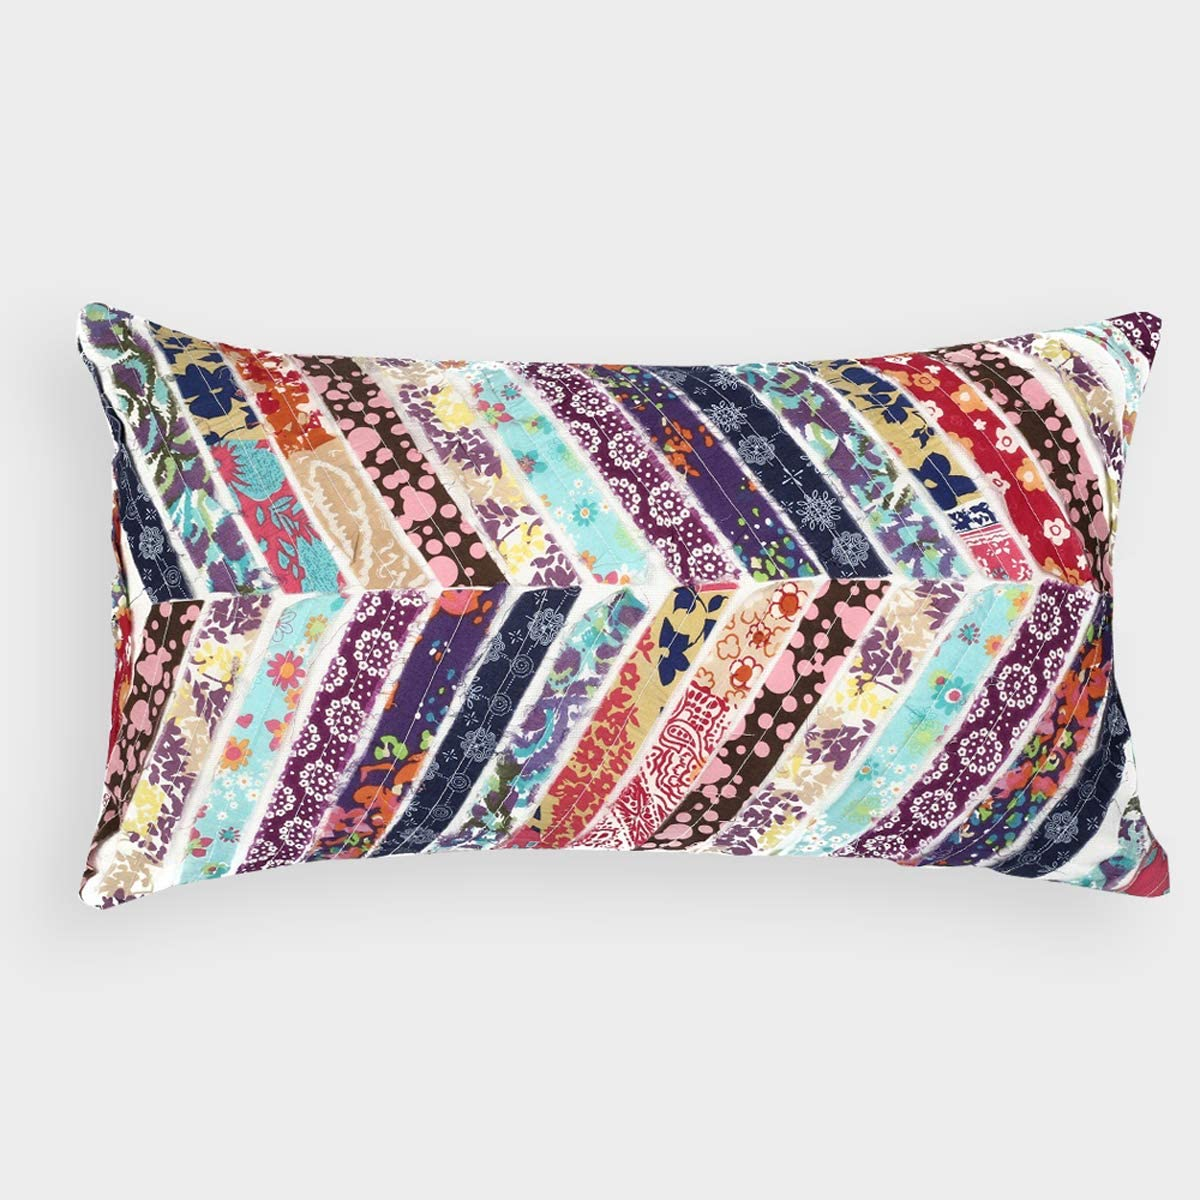 A1 Home Collections RCC-1681 Patchwork Cotton Throw Pillow Multi-Color